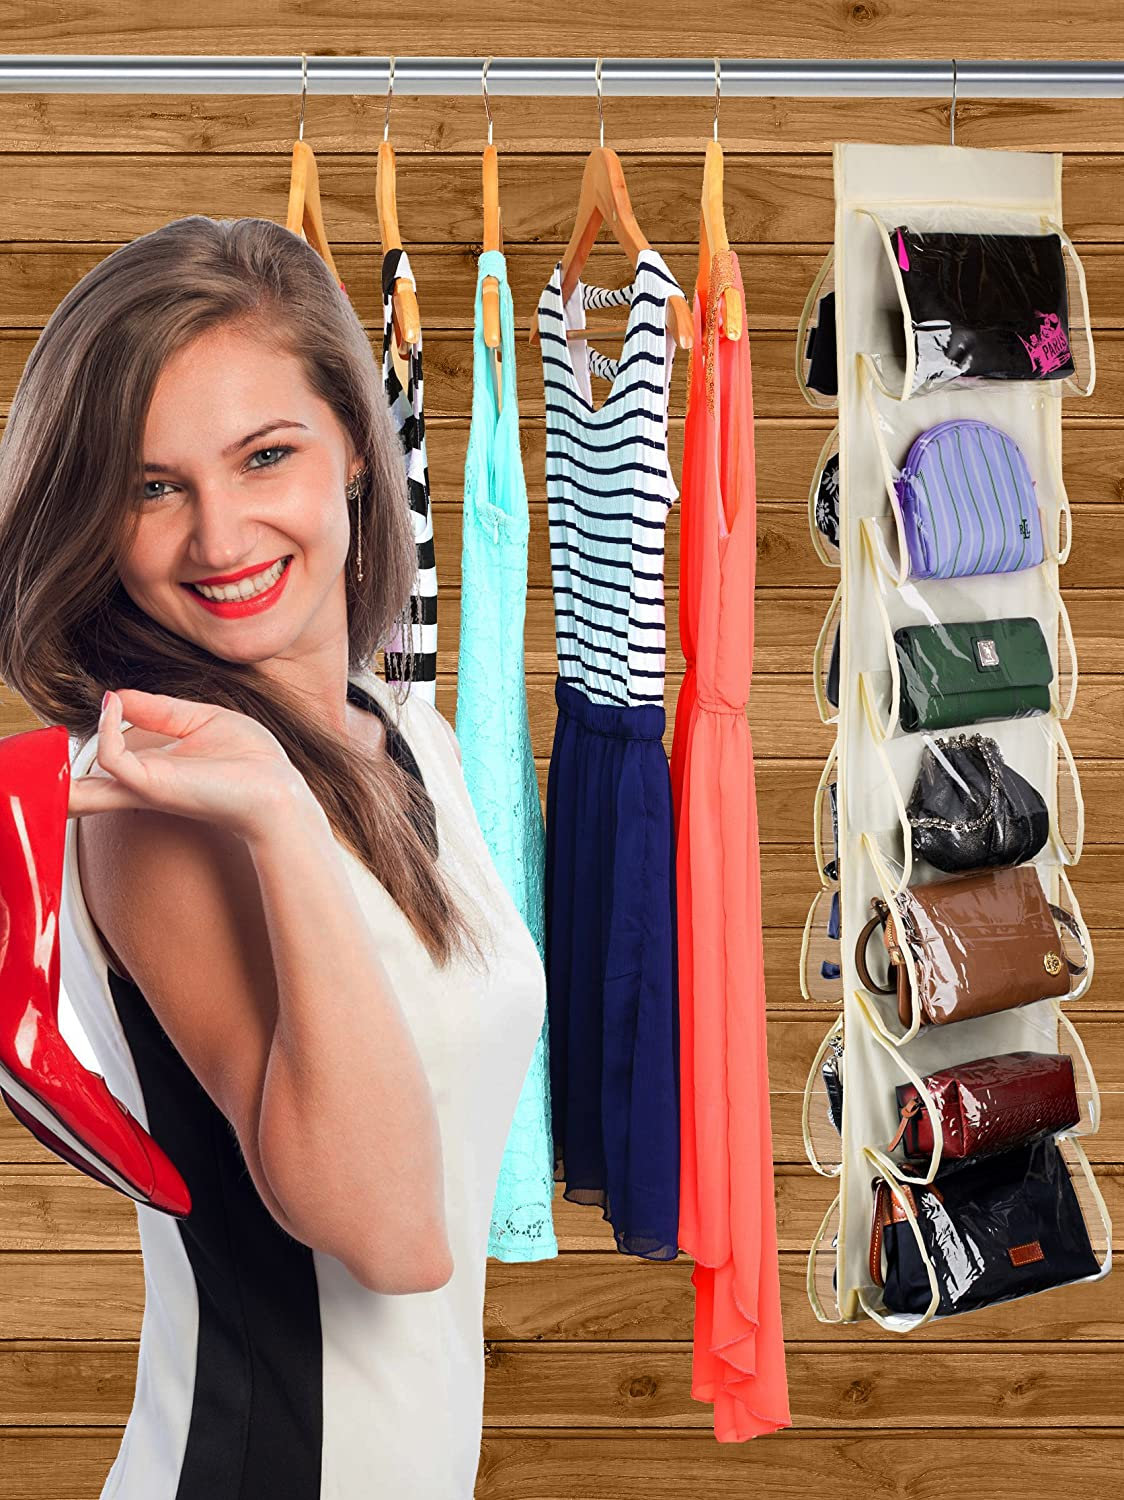 Hanging Shoe Organizer Hang it in a Closet to Keep your Closets Neat and Organized. 14 Pockets Handbags or Purse and Enable you to Find Them Easily The Clear Pockets Will Protect your Shoes